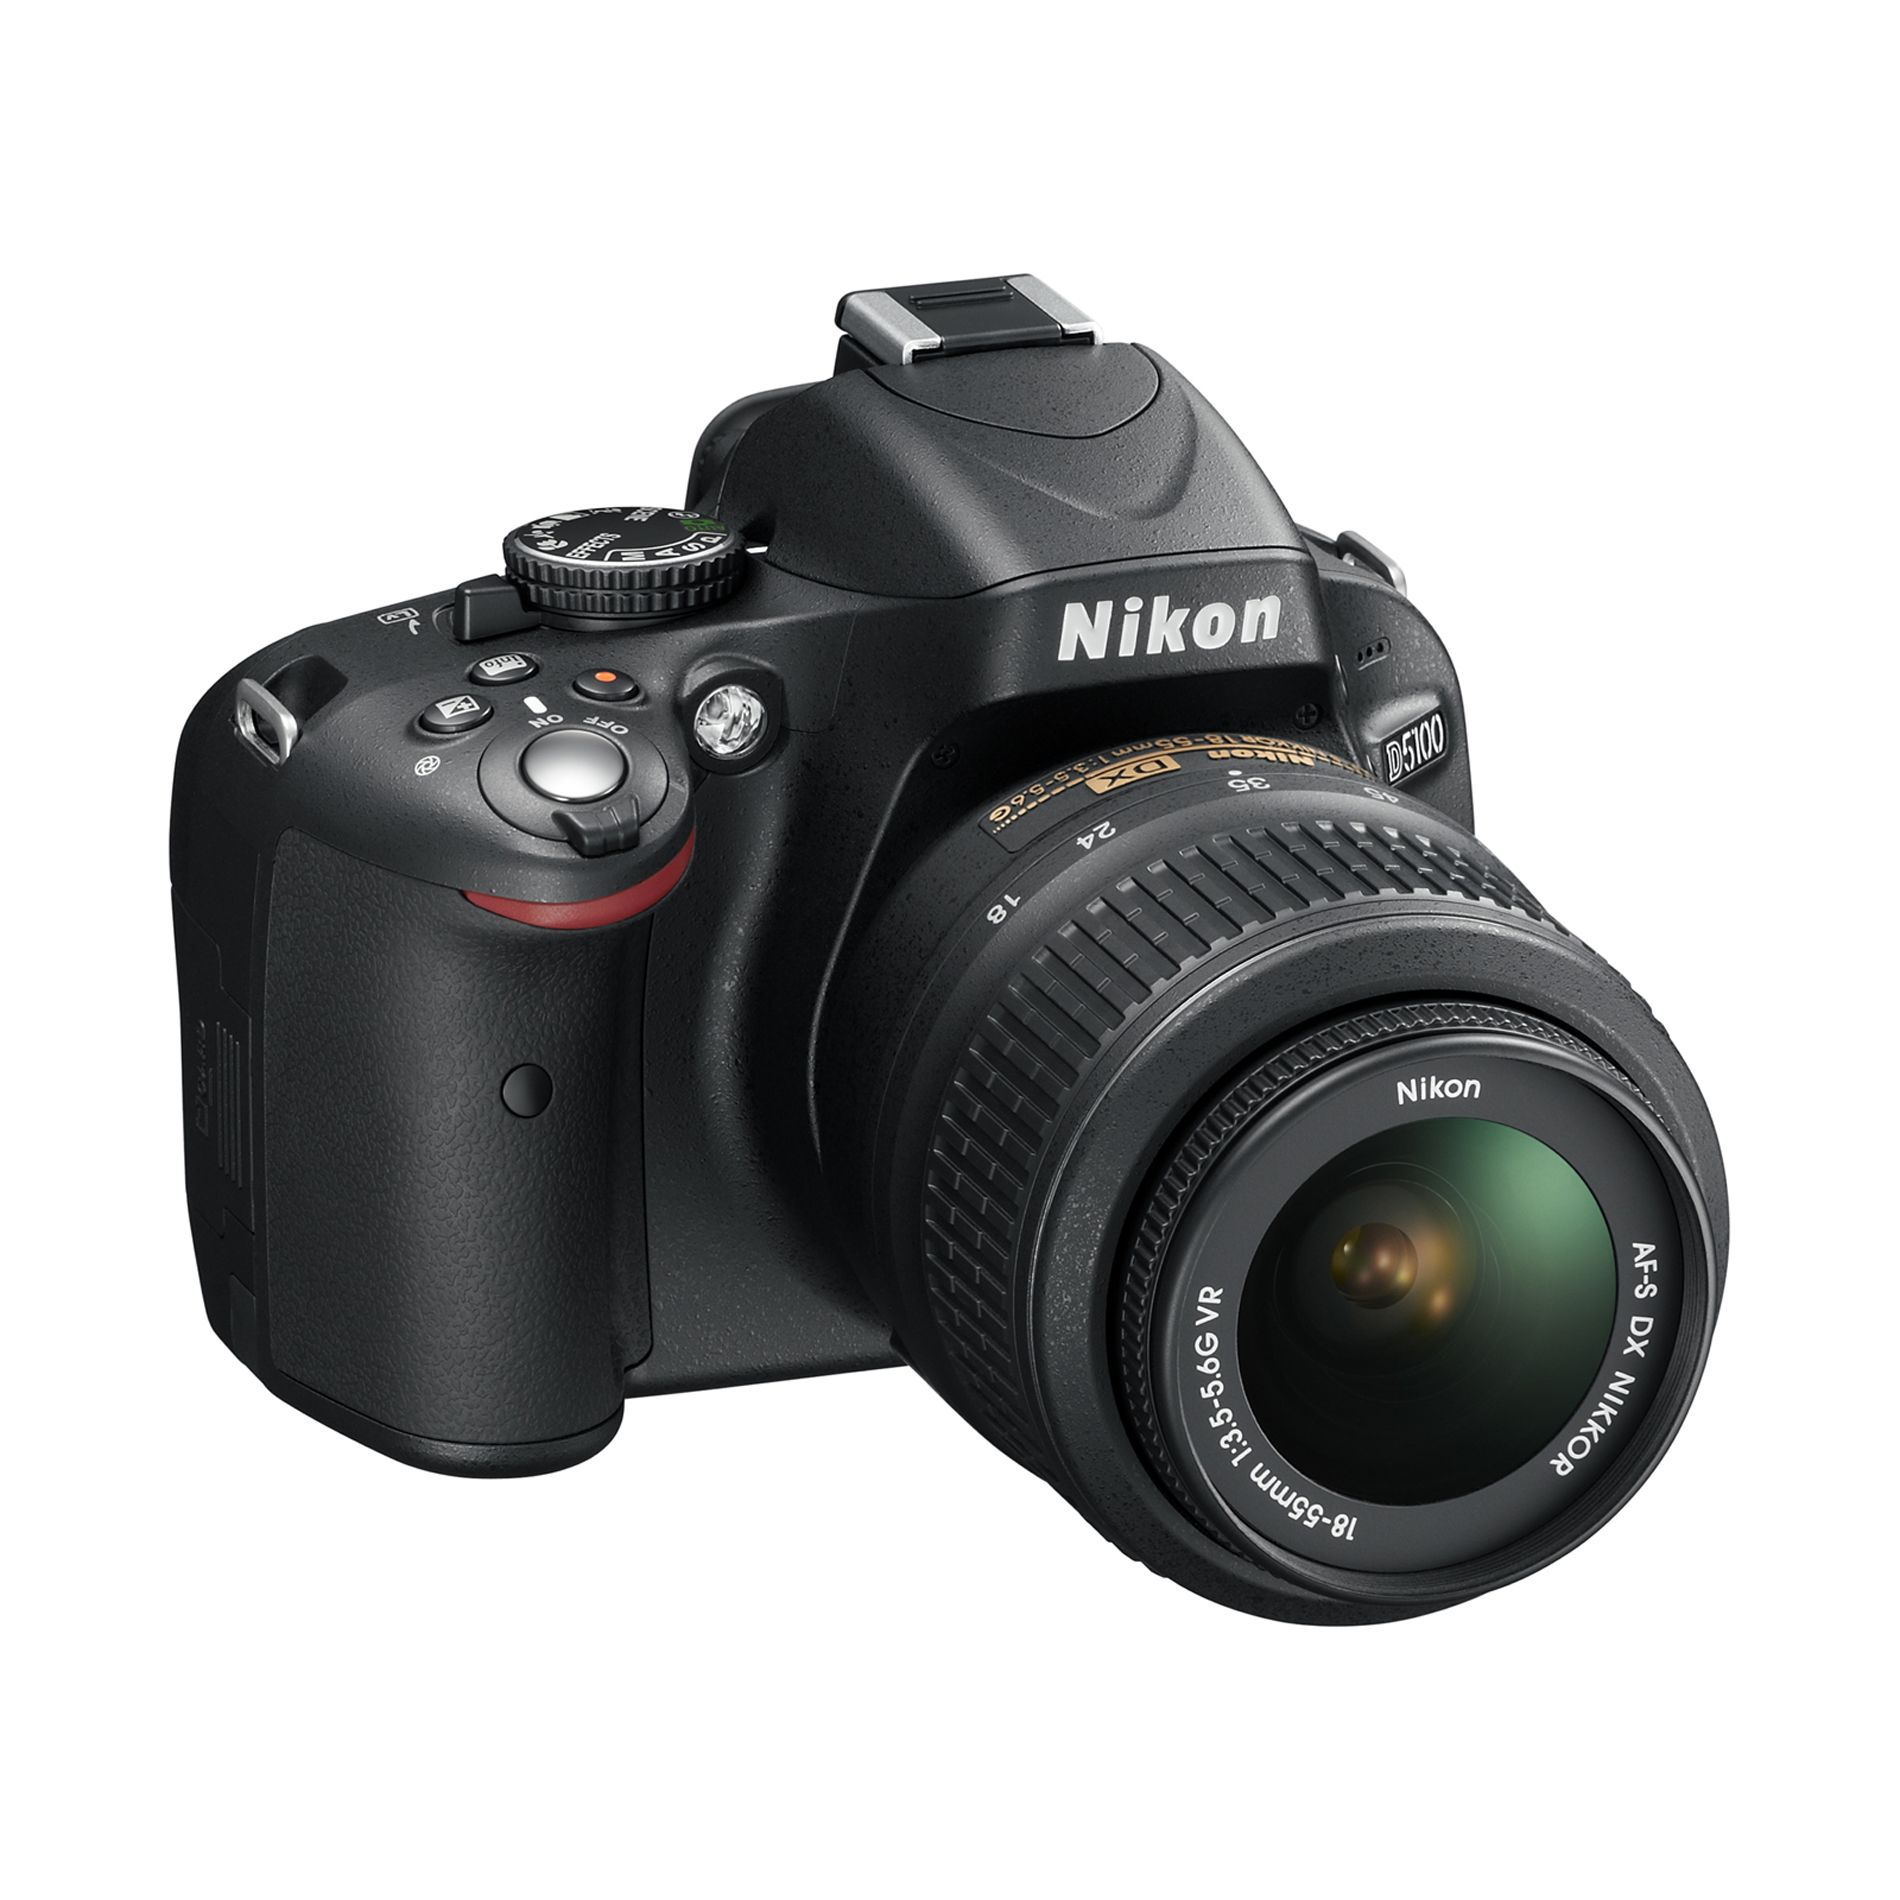 Nikon 16.2-Megapixel D5100 Digital SLR Camera with 18-55mm Lens